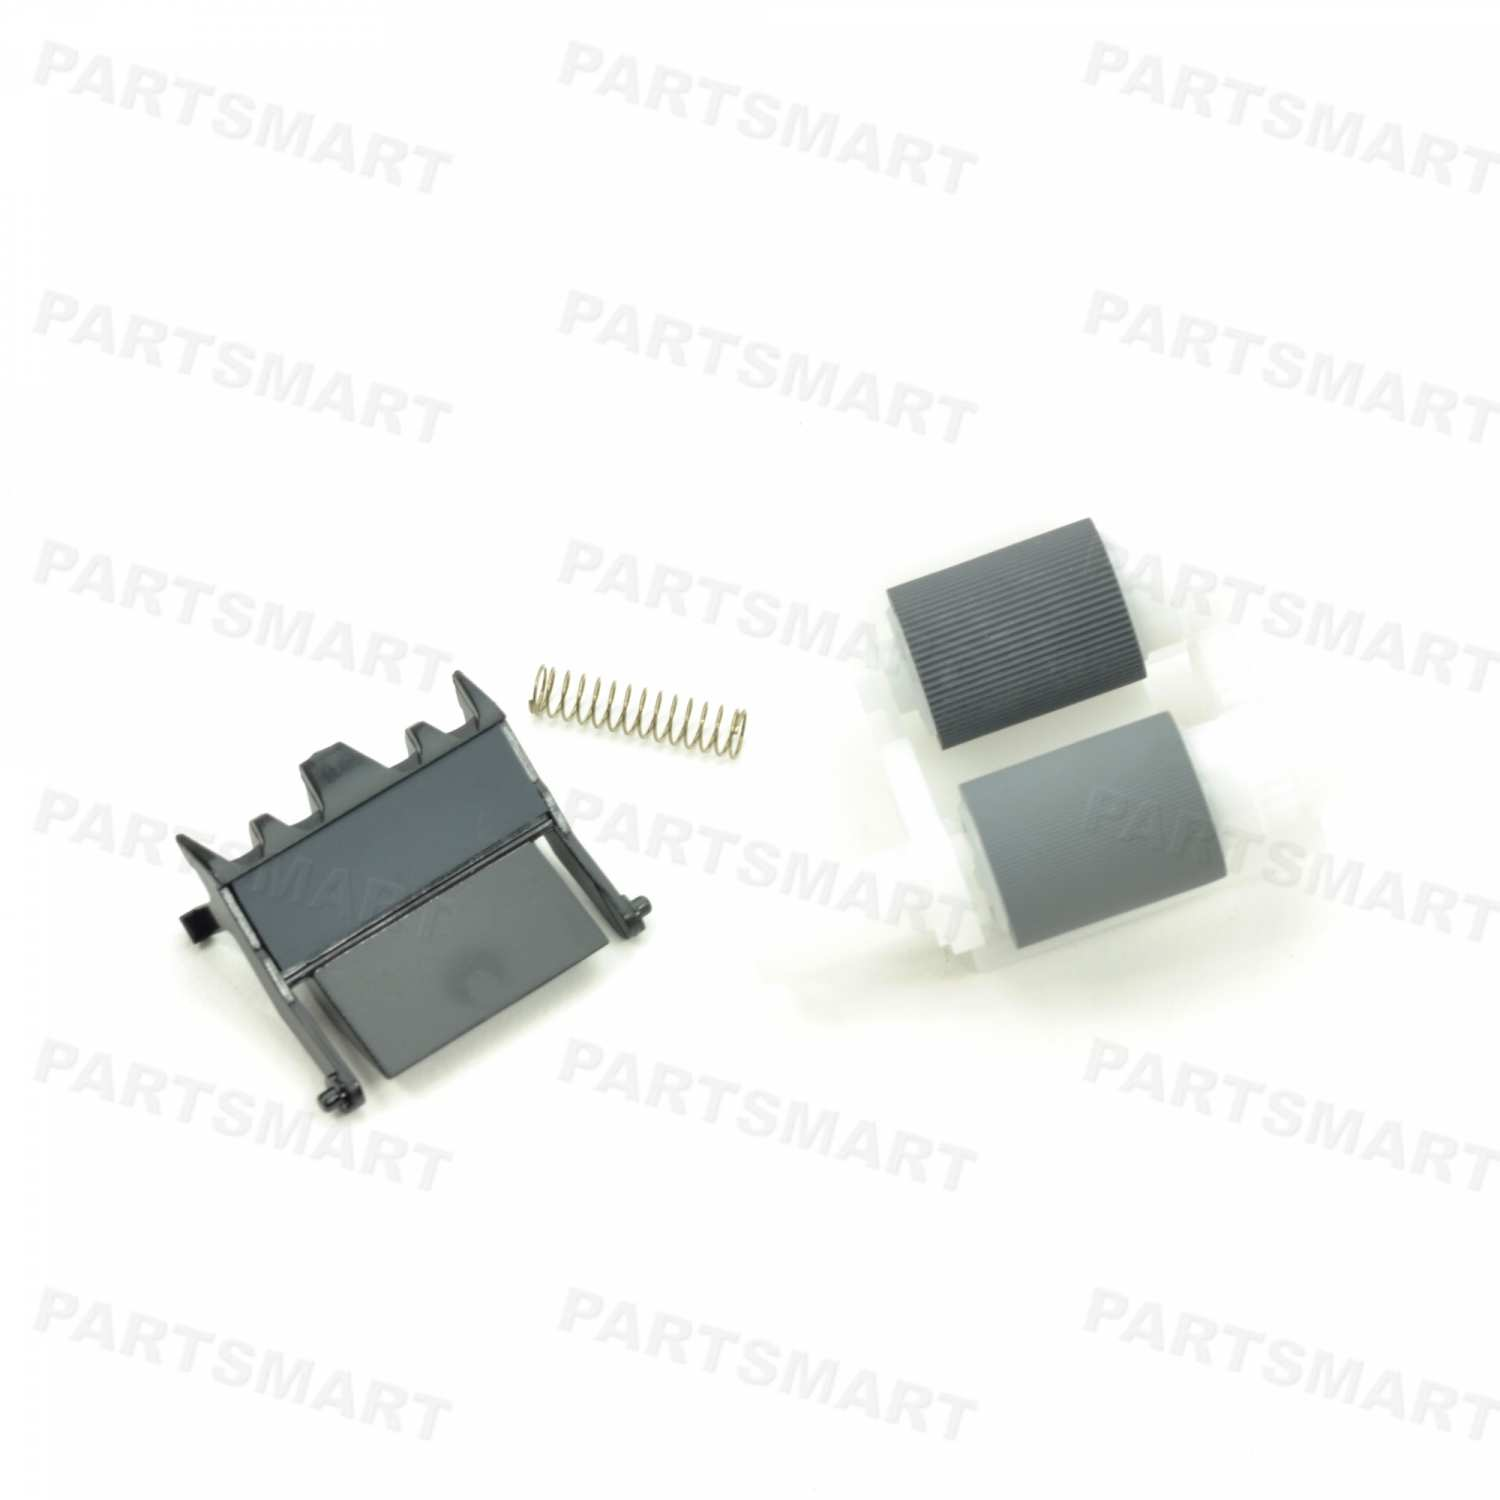 D008GE001 Paper Feed Kit for Brother DCP-L5500D